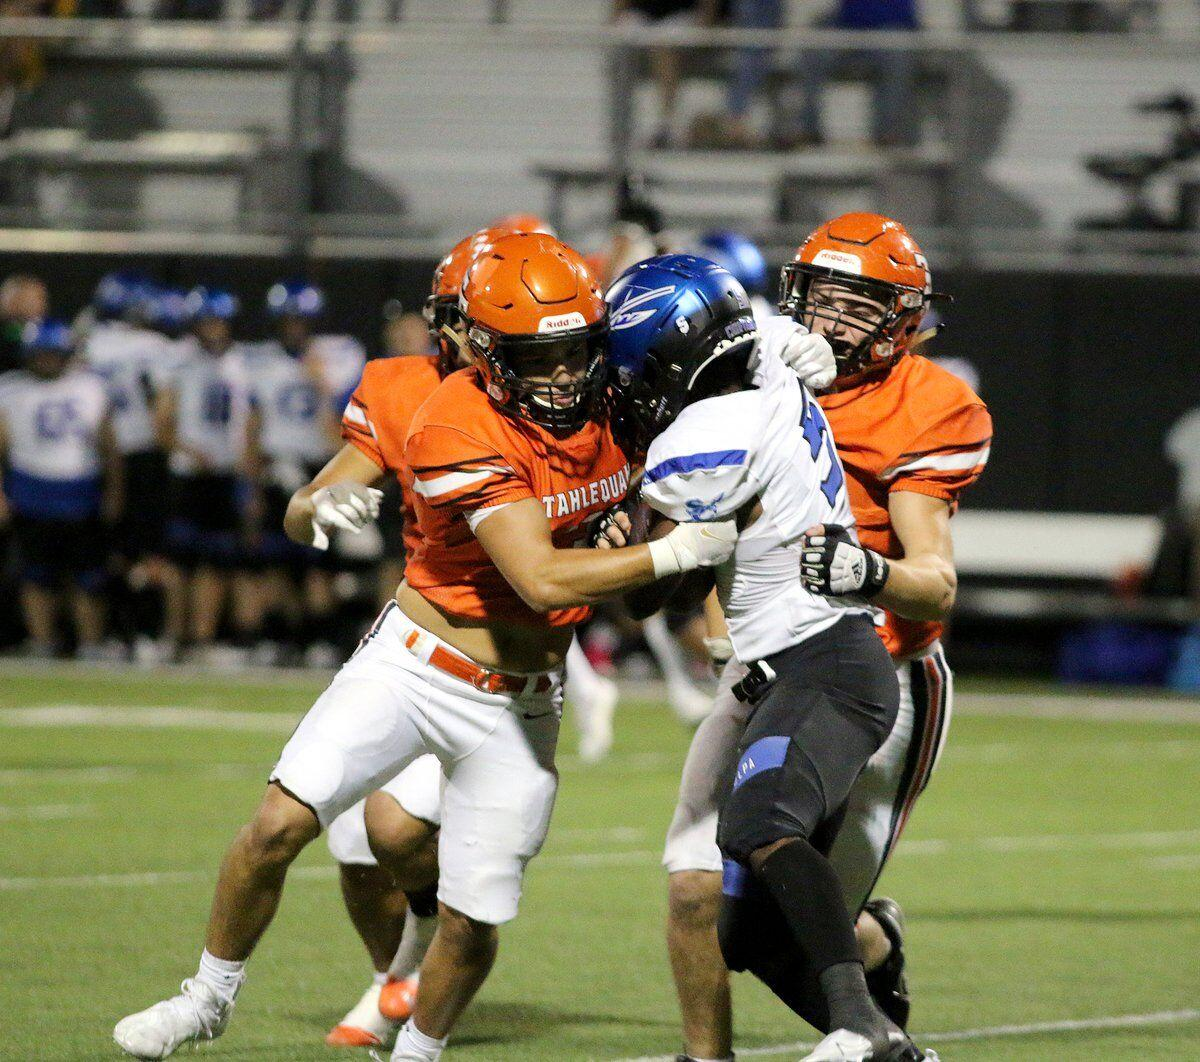 TIGER MAGIC: Tahlequah scores 21 unanswered points in the second half to deflate Sapulpa